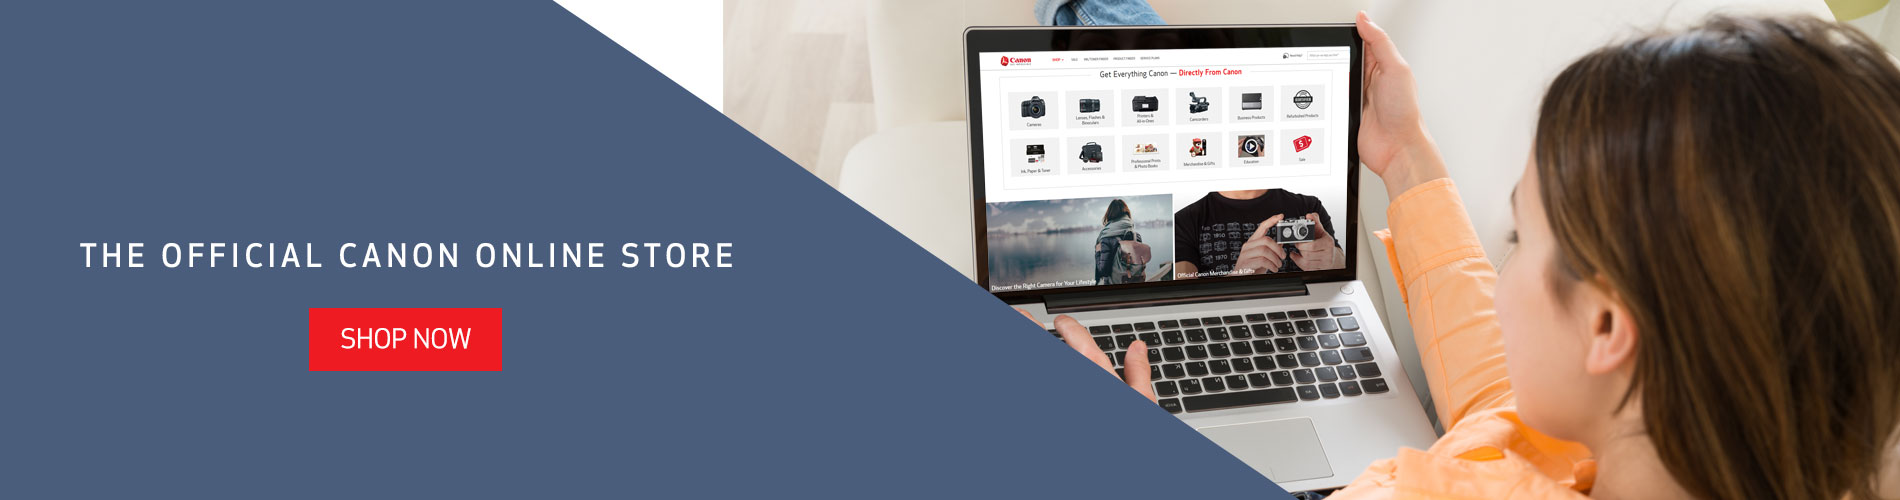 Shop now on the official Canon online store!